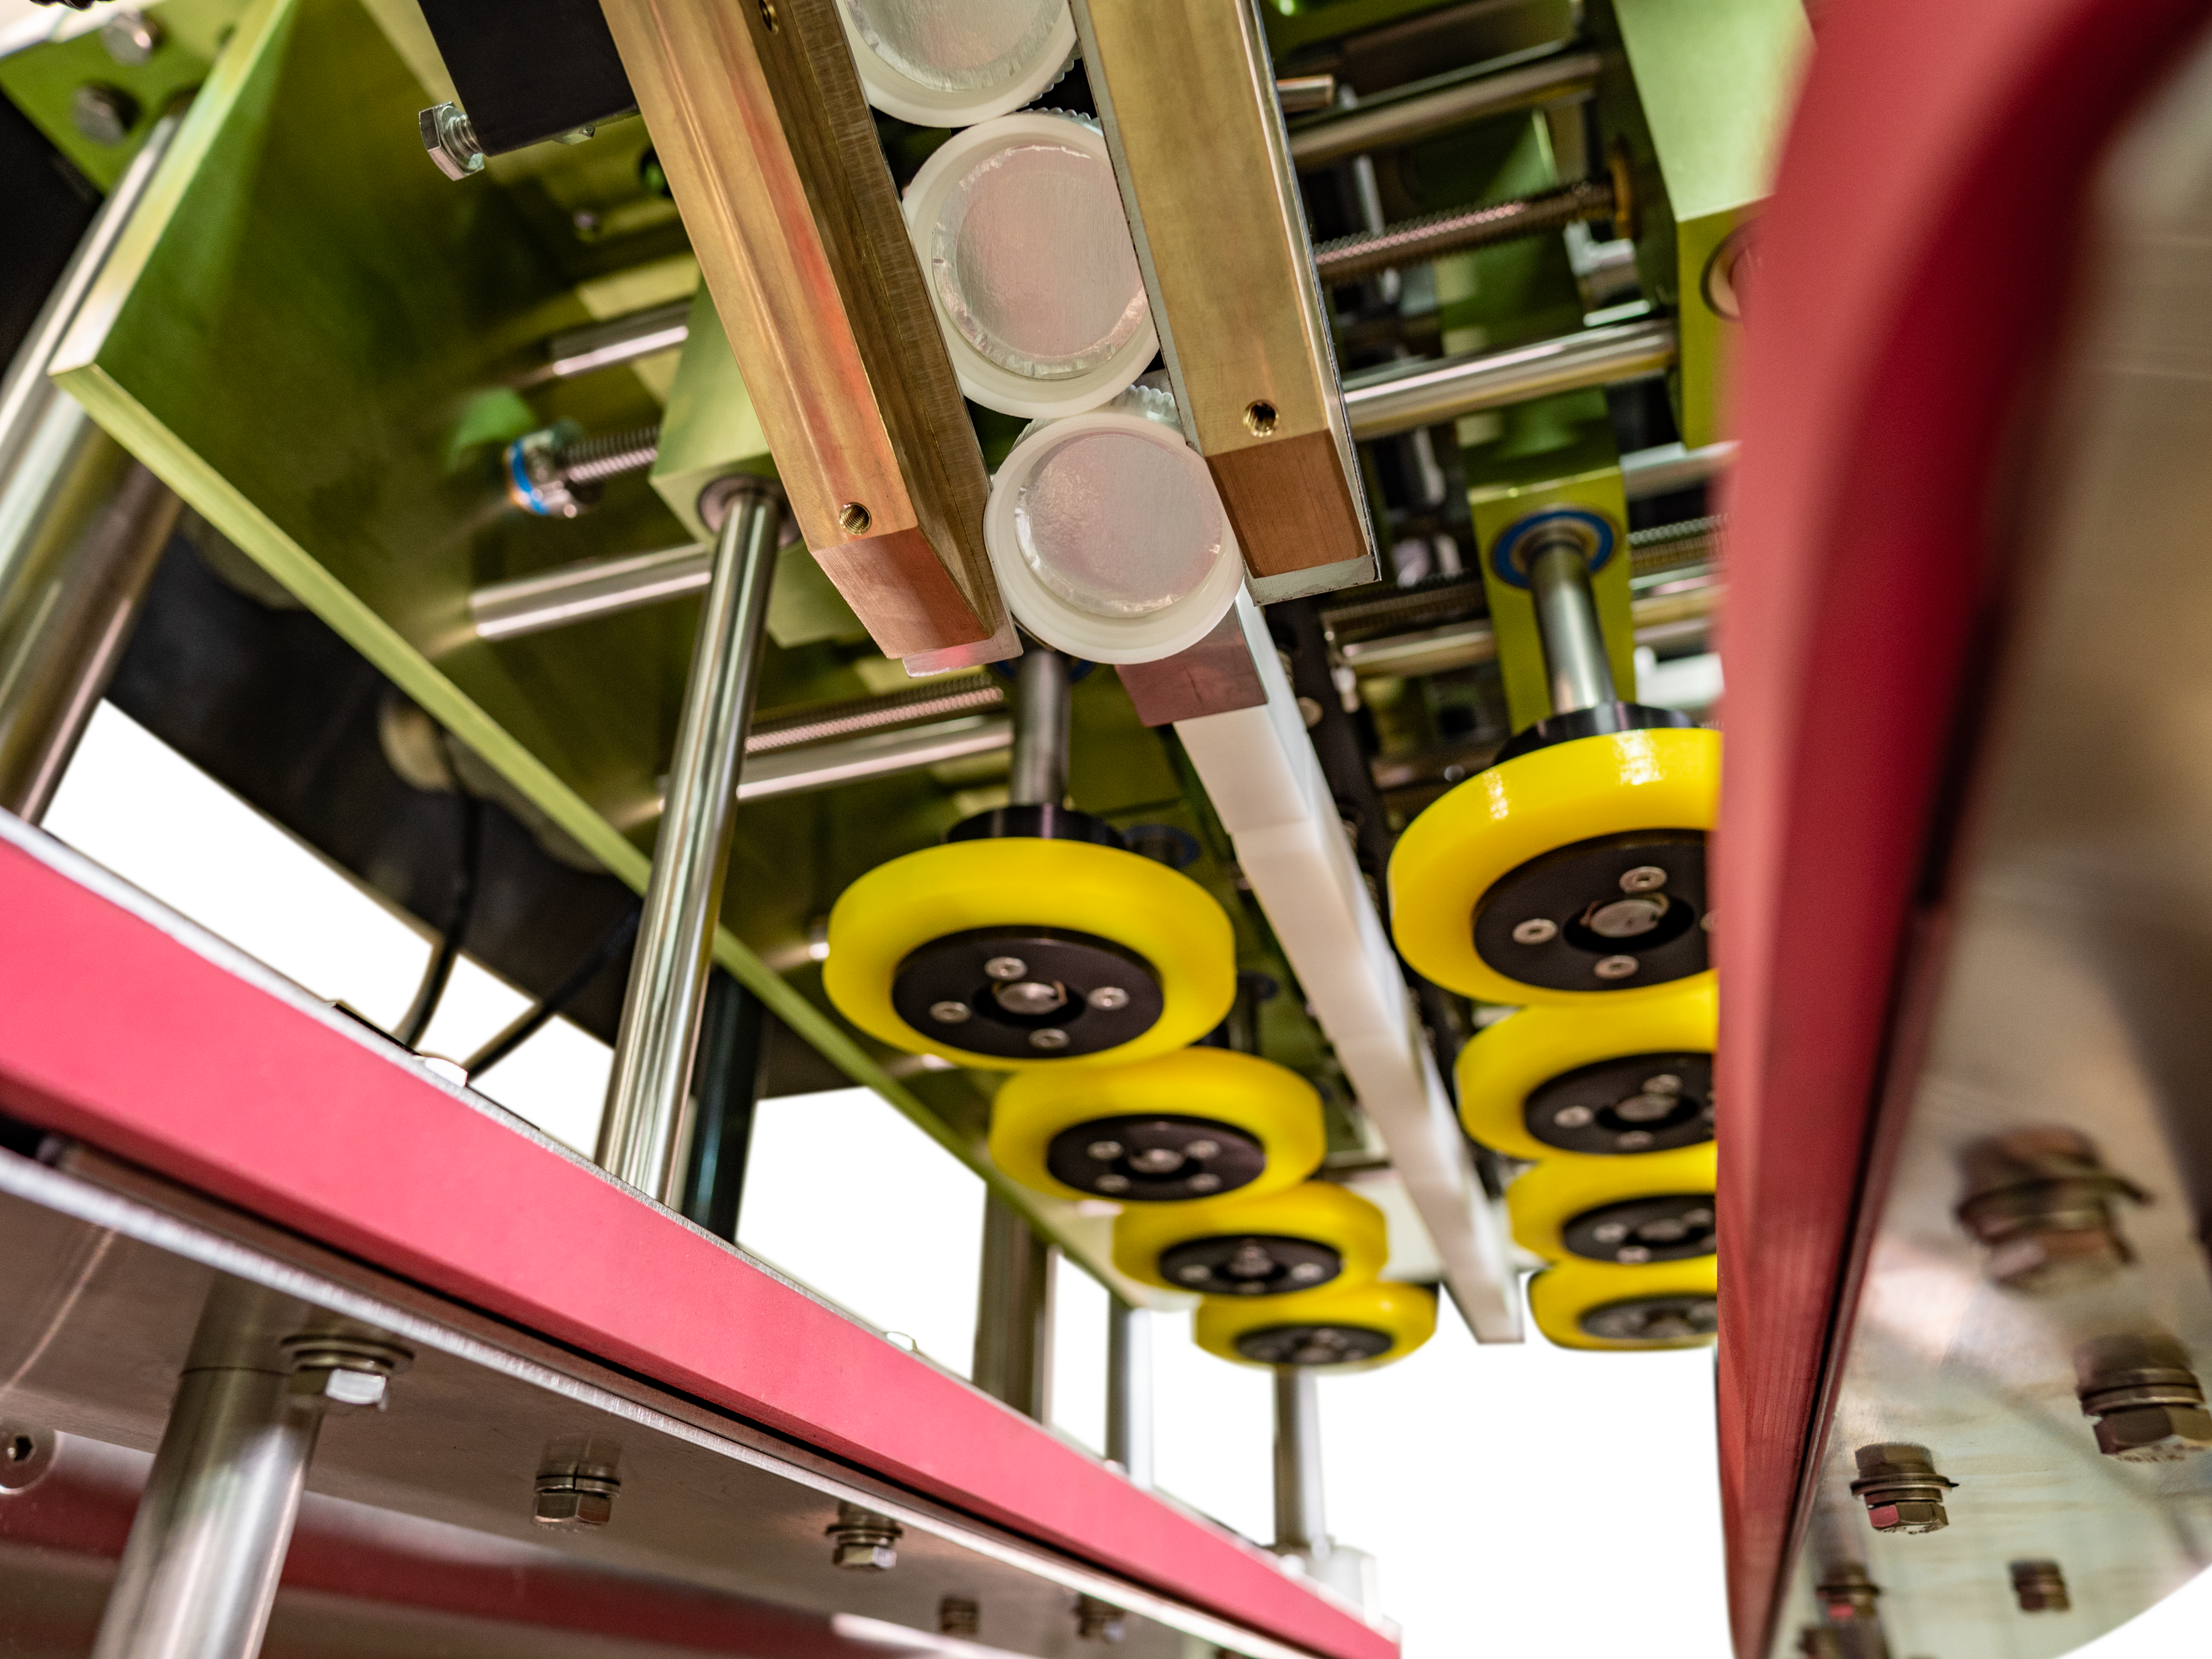 The modular control hub is suspended above the conveyor for easy access and can be easily moved based on operator preference.